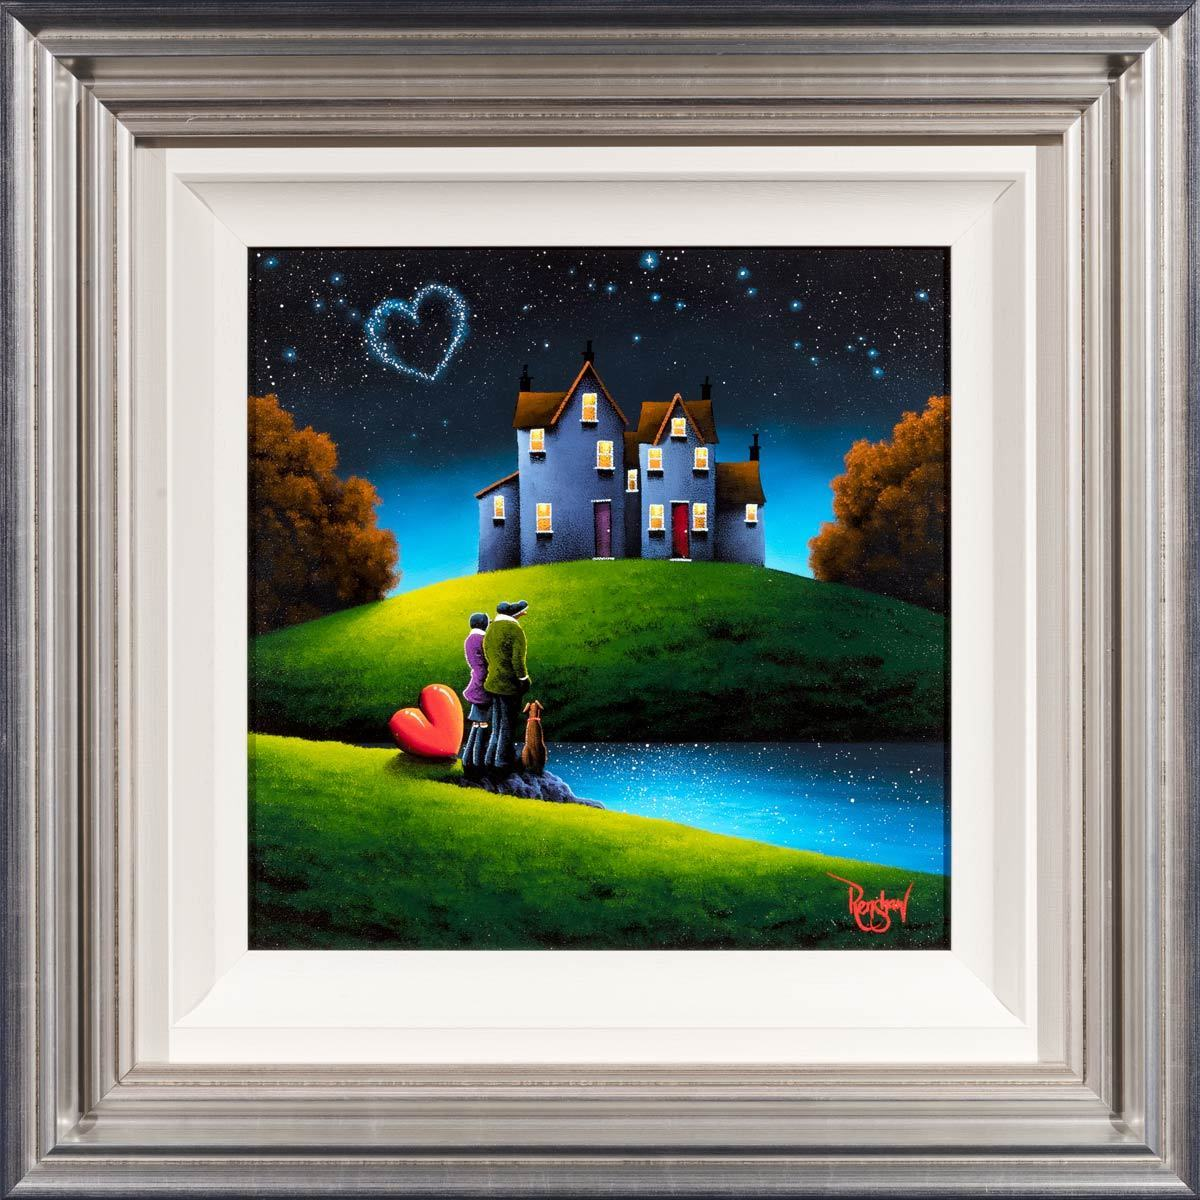 Our House On The Hill - Original David Renshaw Framed